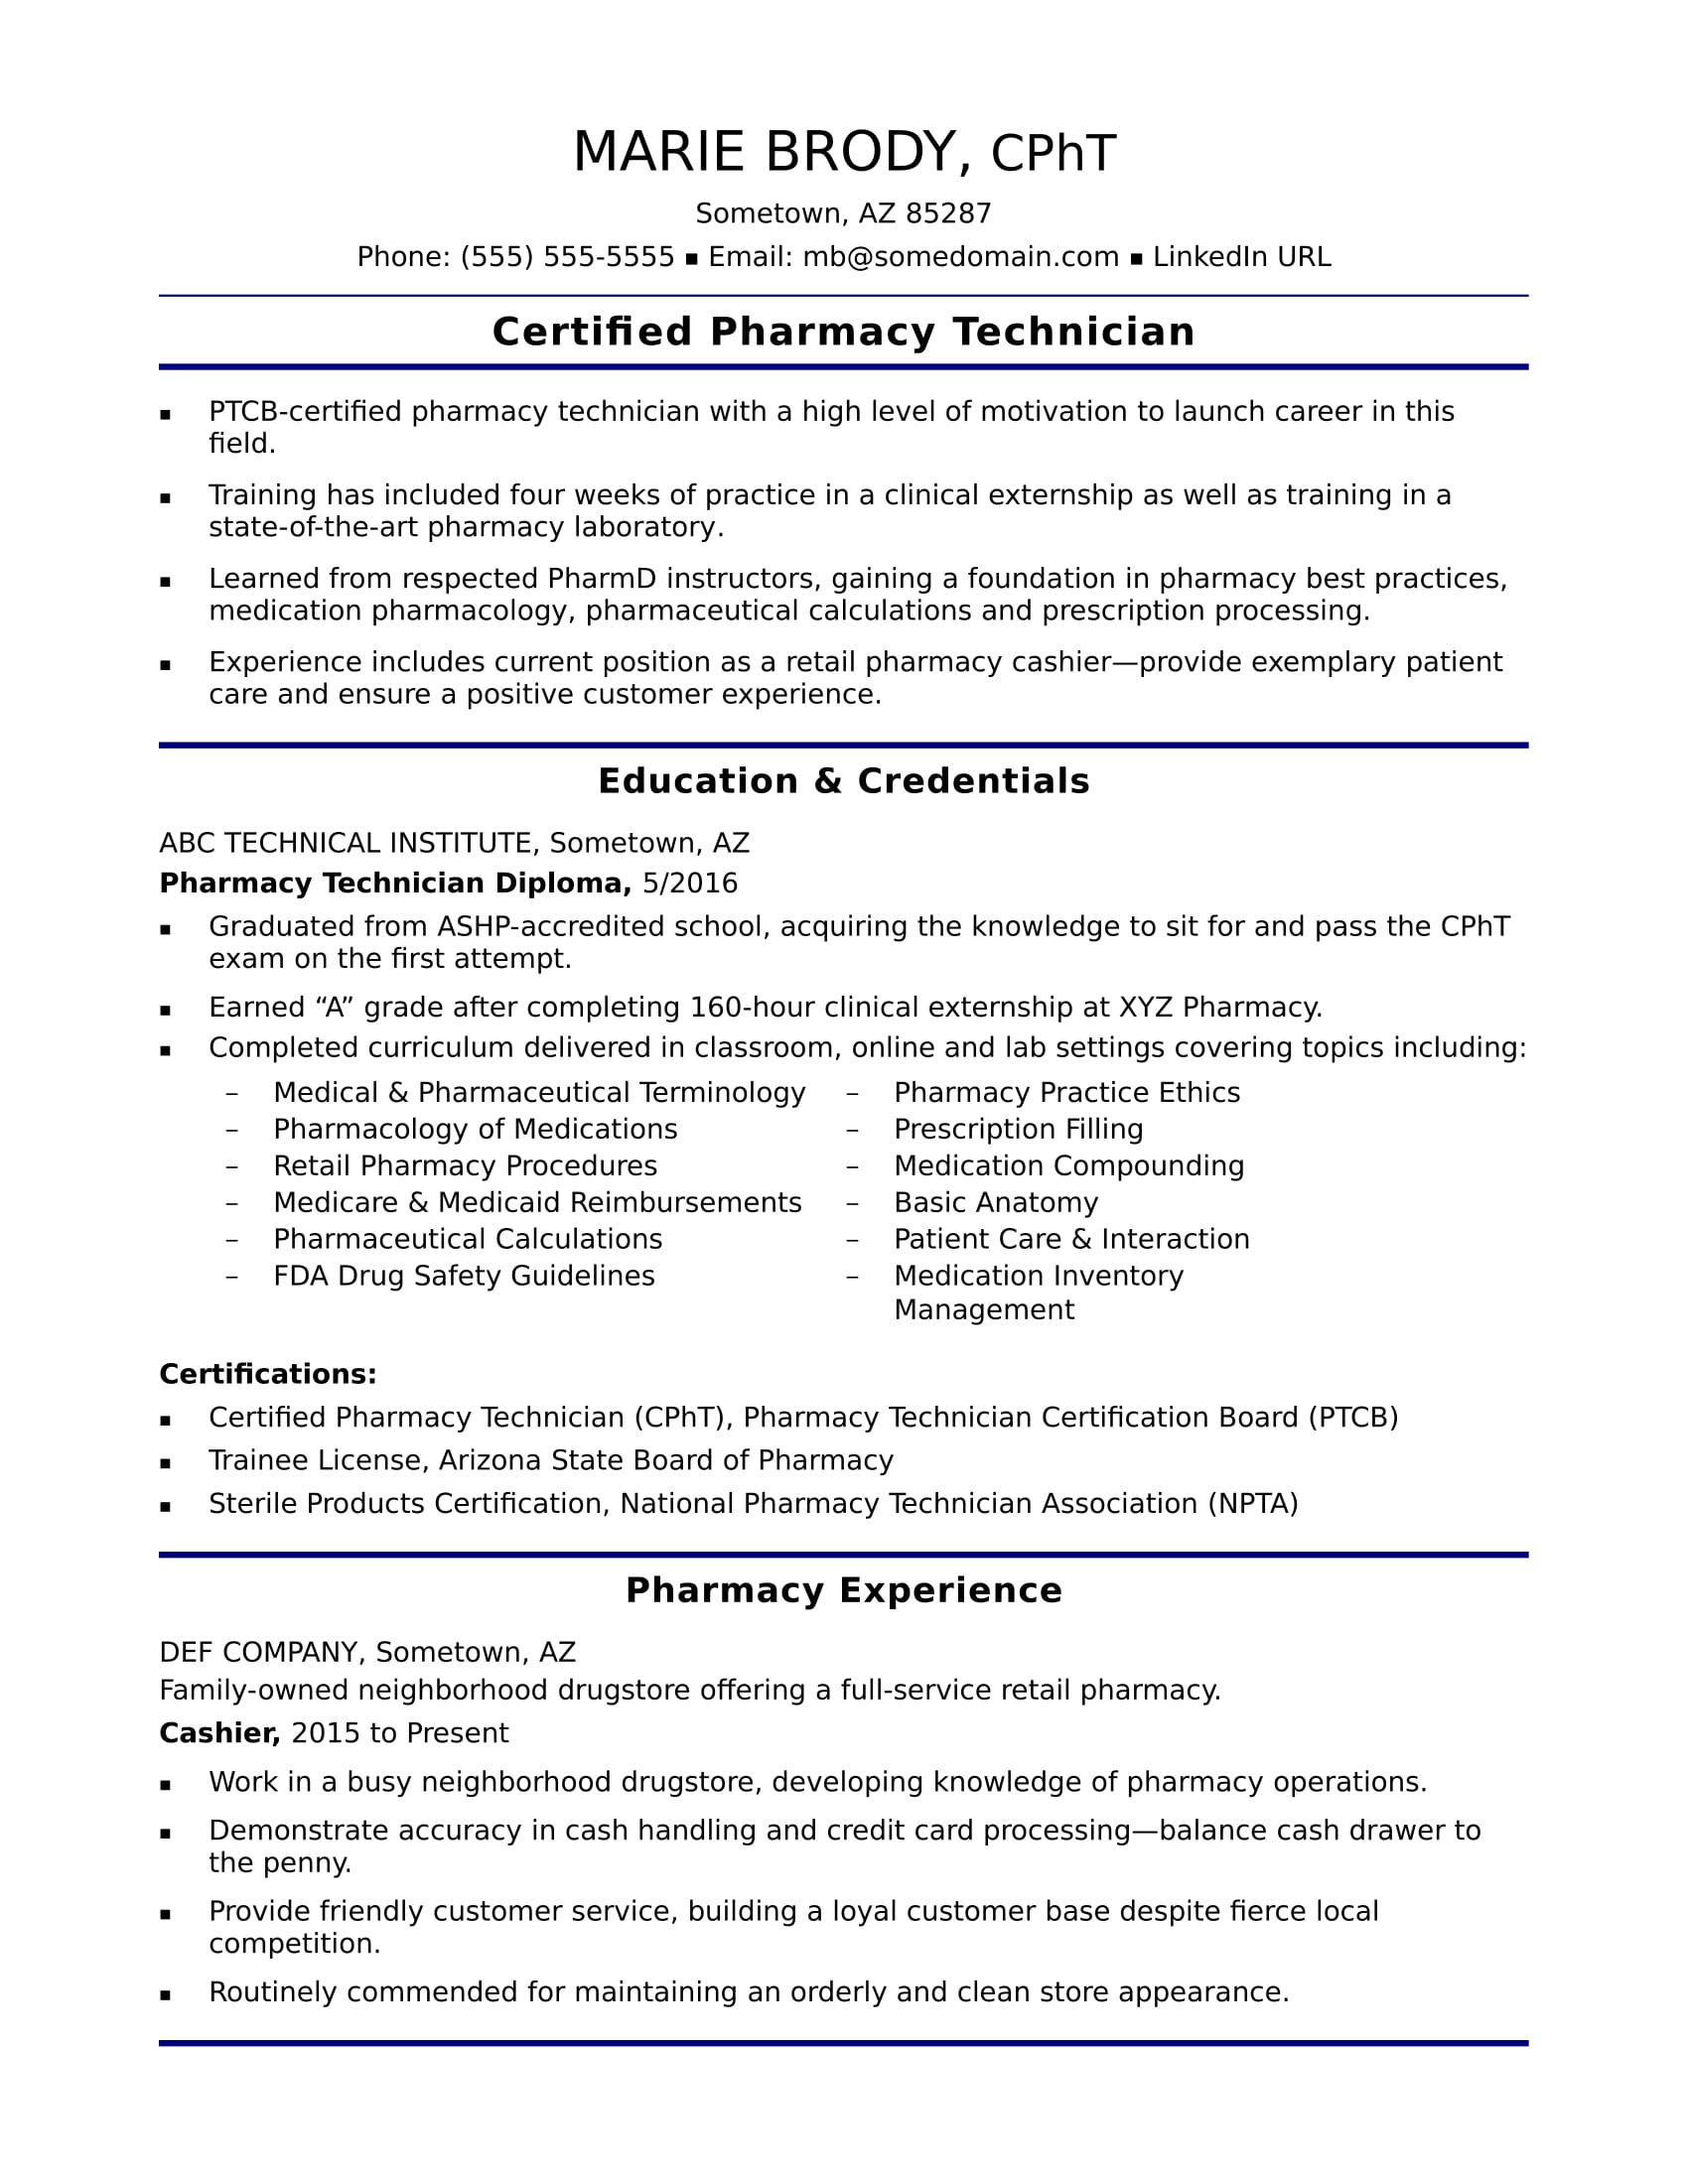 entry level pharmacy technician resume sample monster to put certifications on typing up Resume Where To Put Certifications On Resume